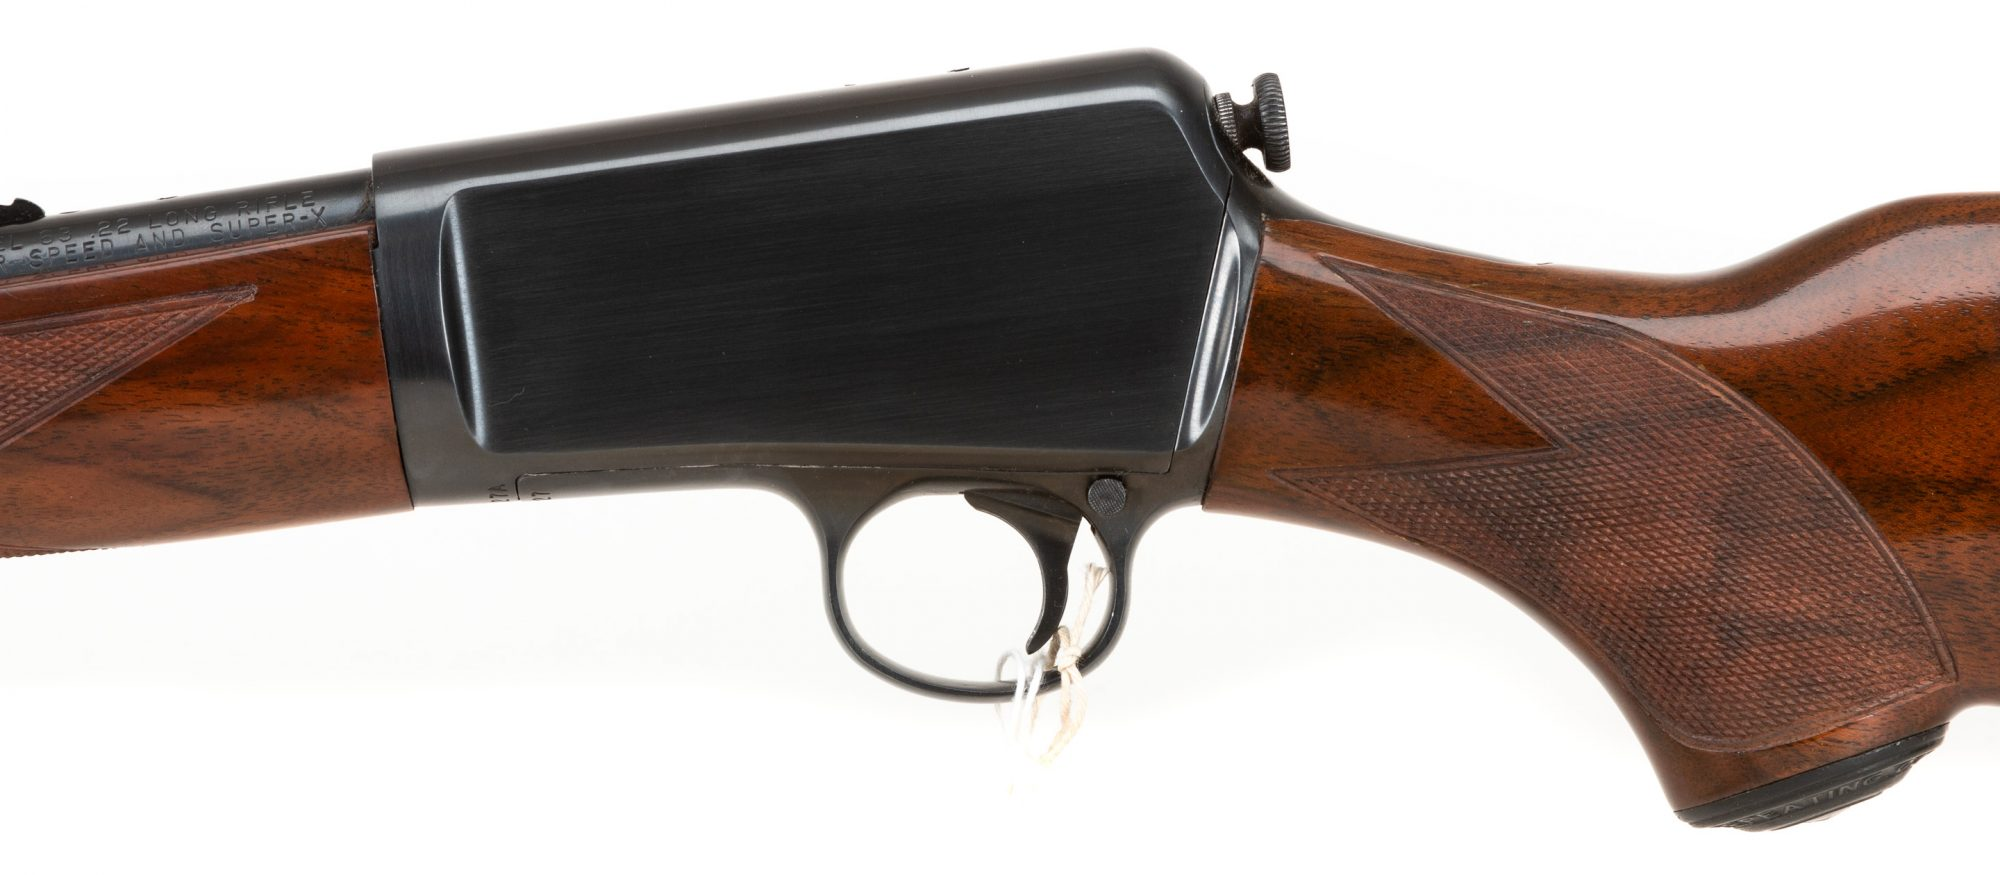 Photo of Winchester Model 63 in .22 Long Rifle